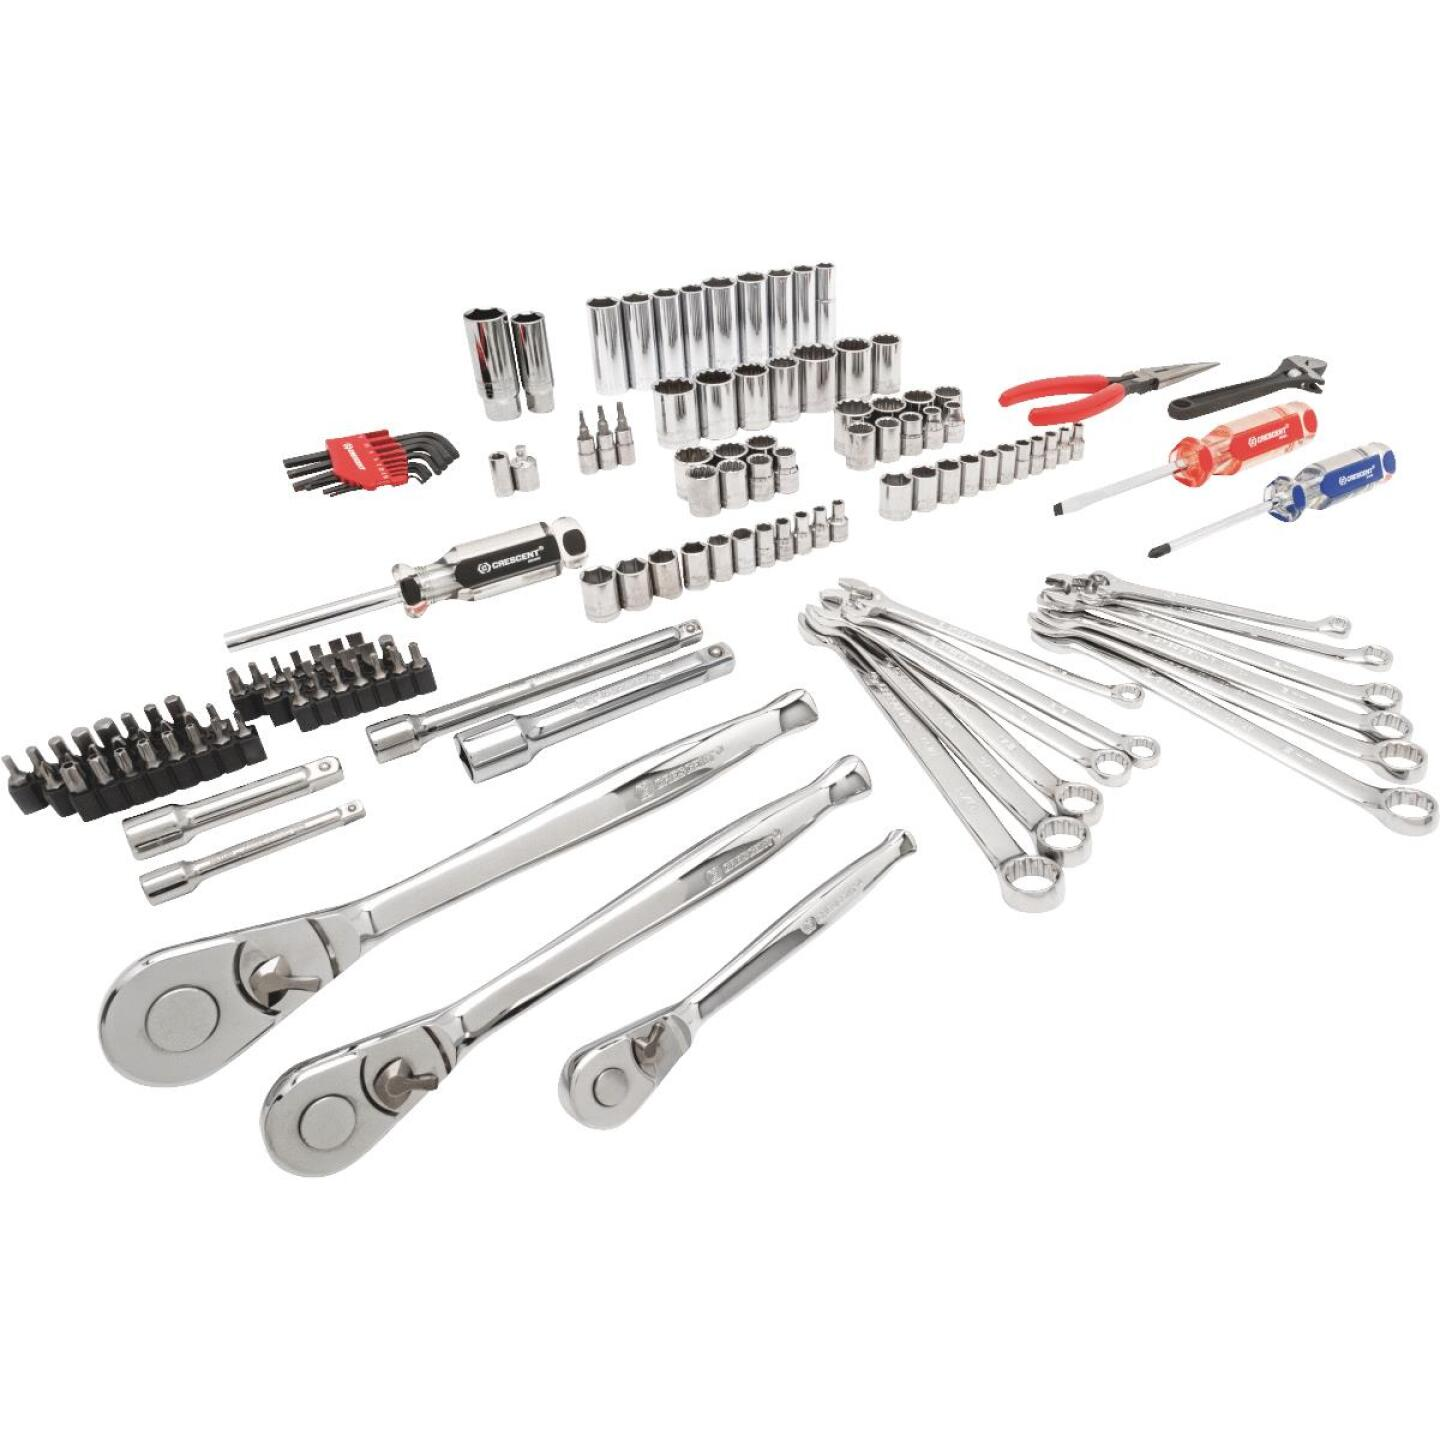 Crescent 1/4 In., 3/8 In., 1/2 In. Drive, 6 & 12-Point Standard/Metric Mechanic & Automative Tool Set (148-Piece) Image 1